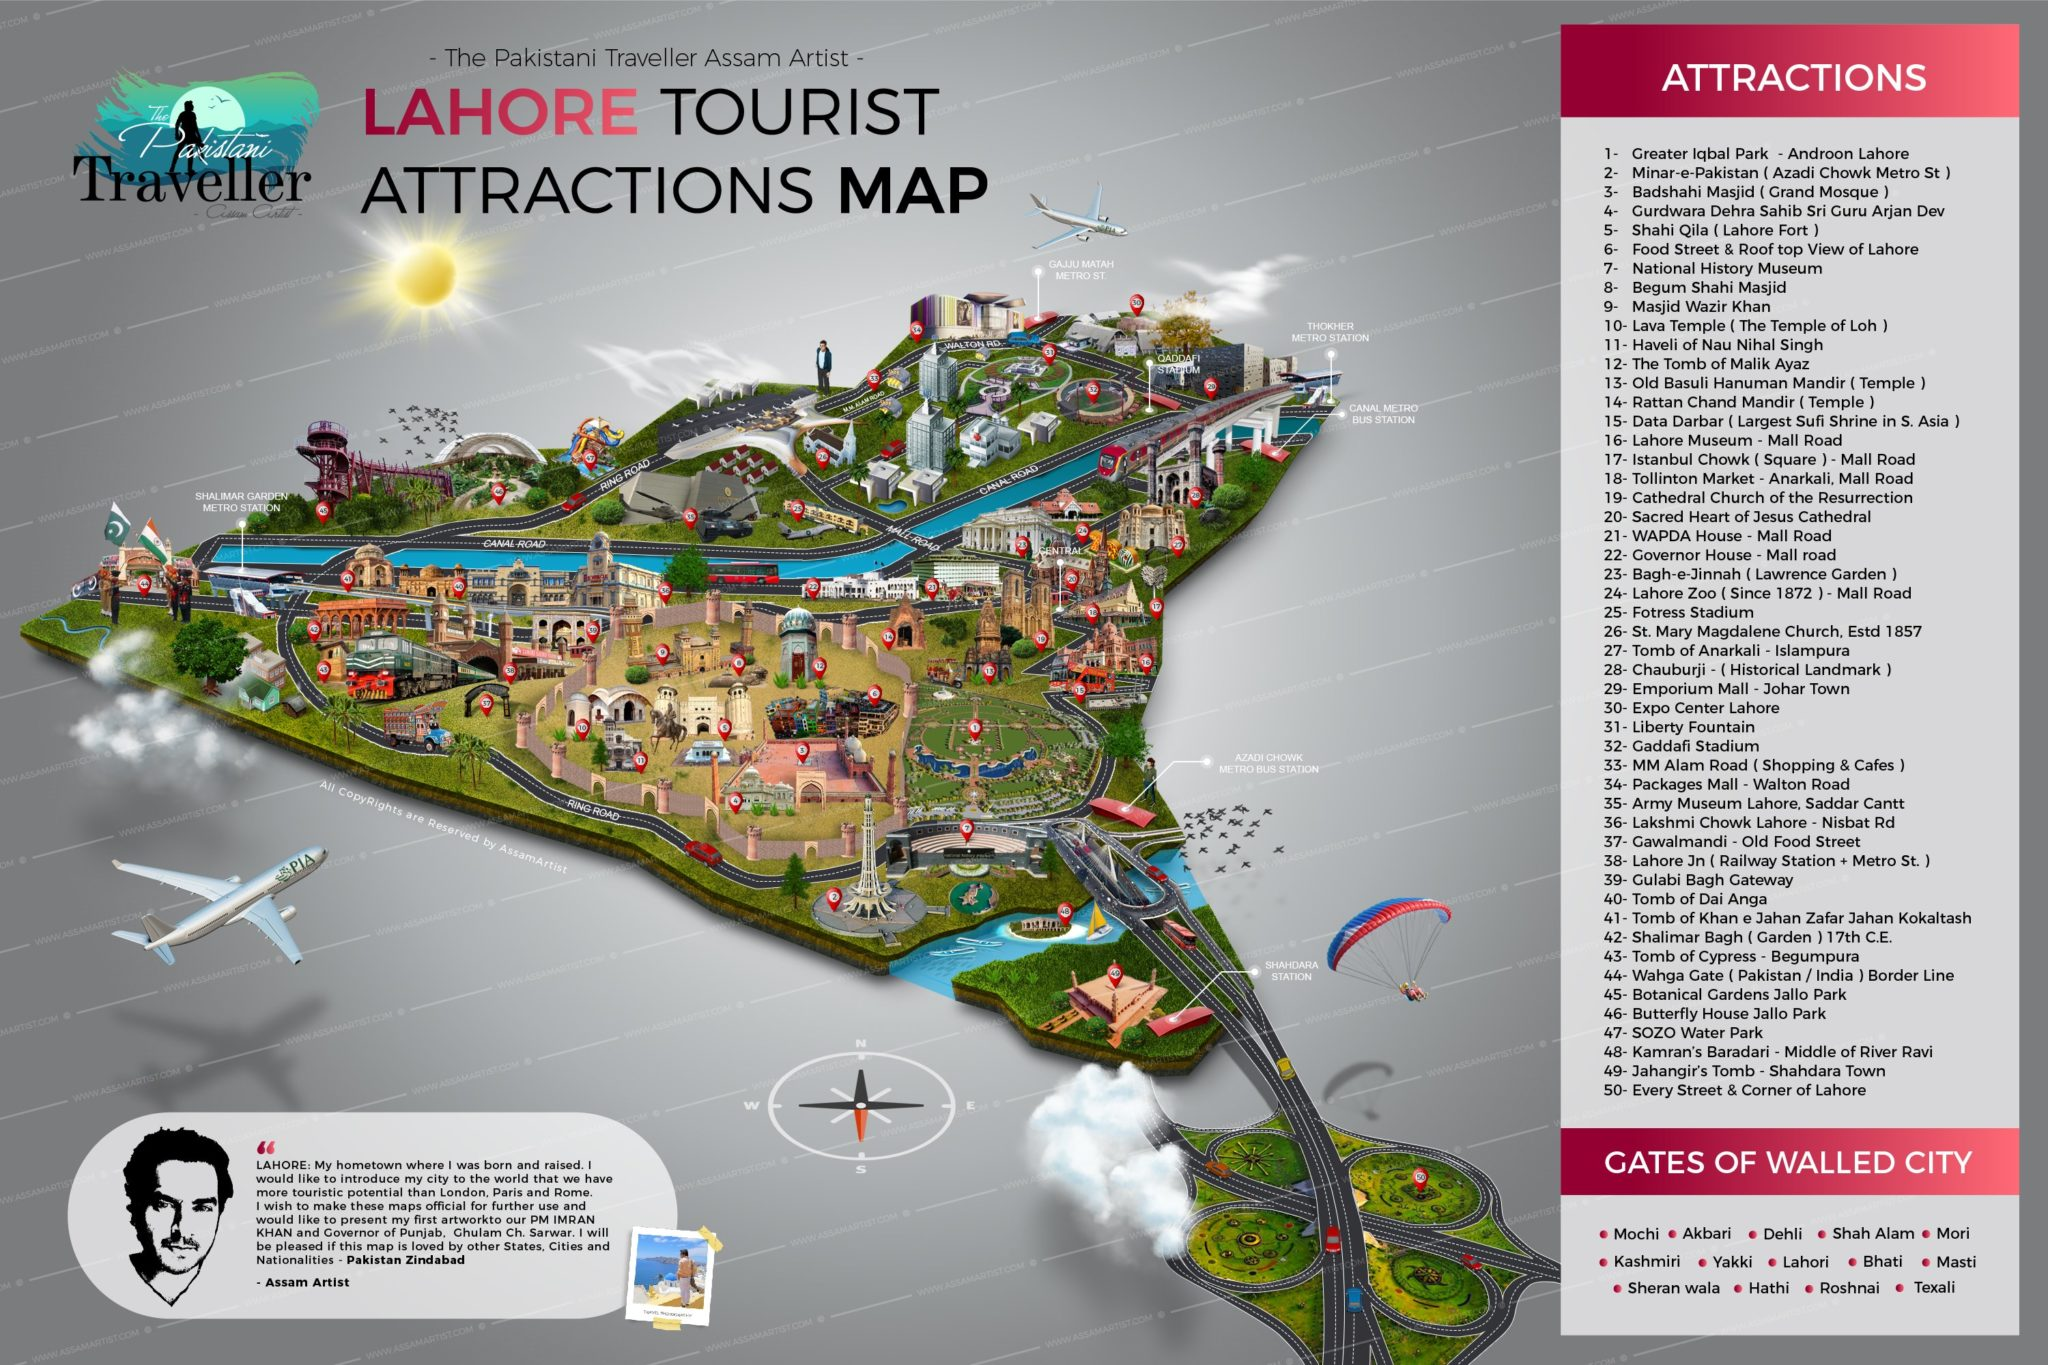 new-lahore-tourist-attraction-map-assam-artist